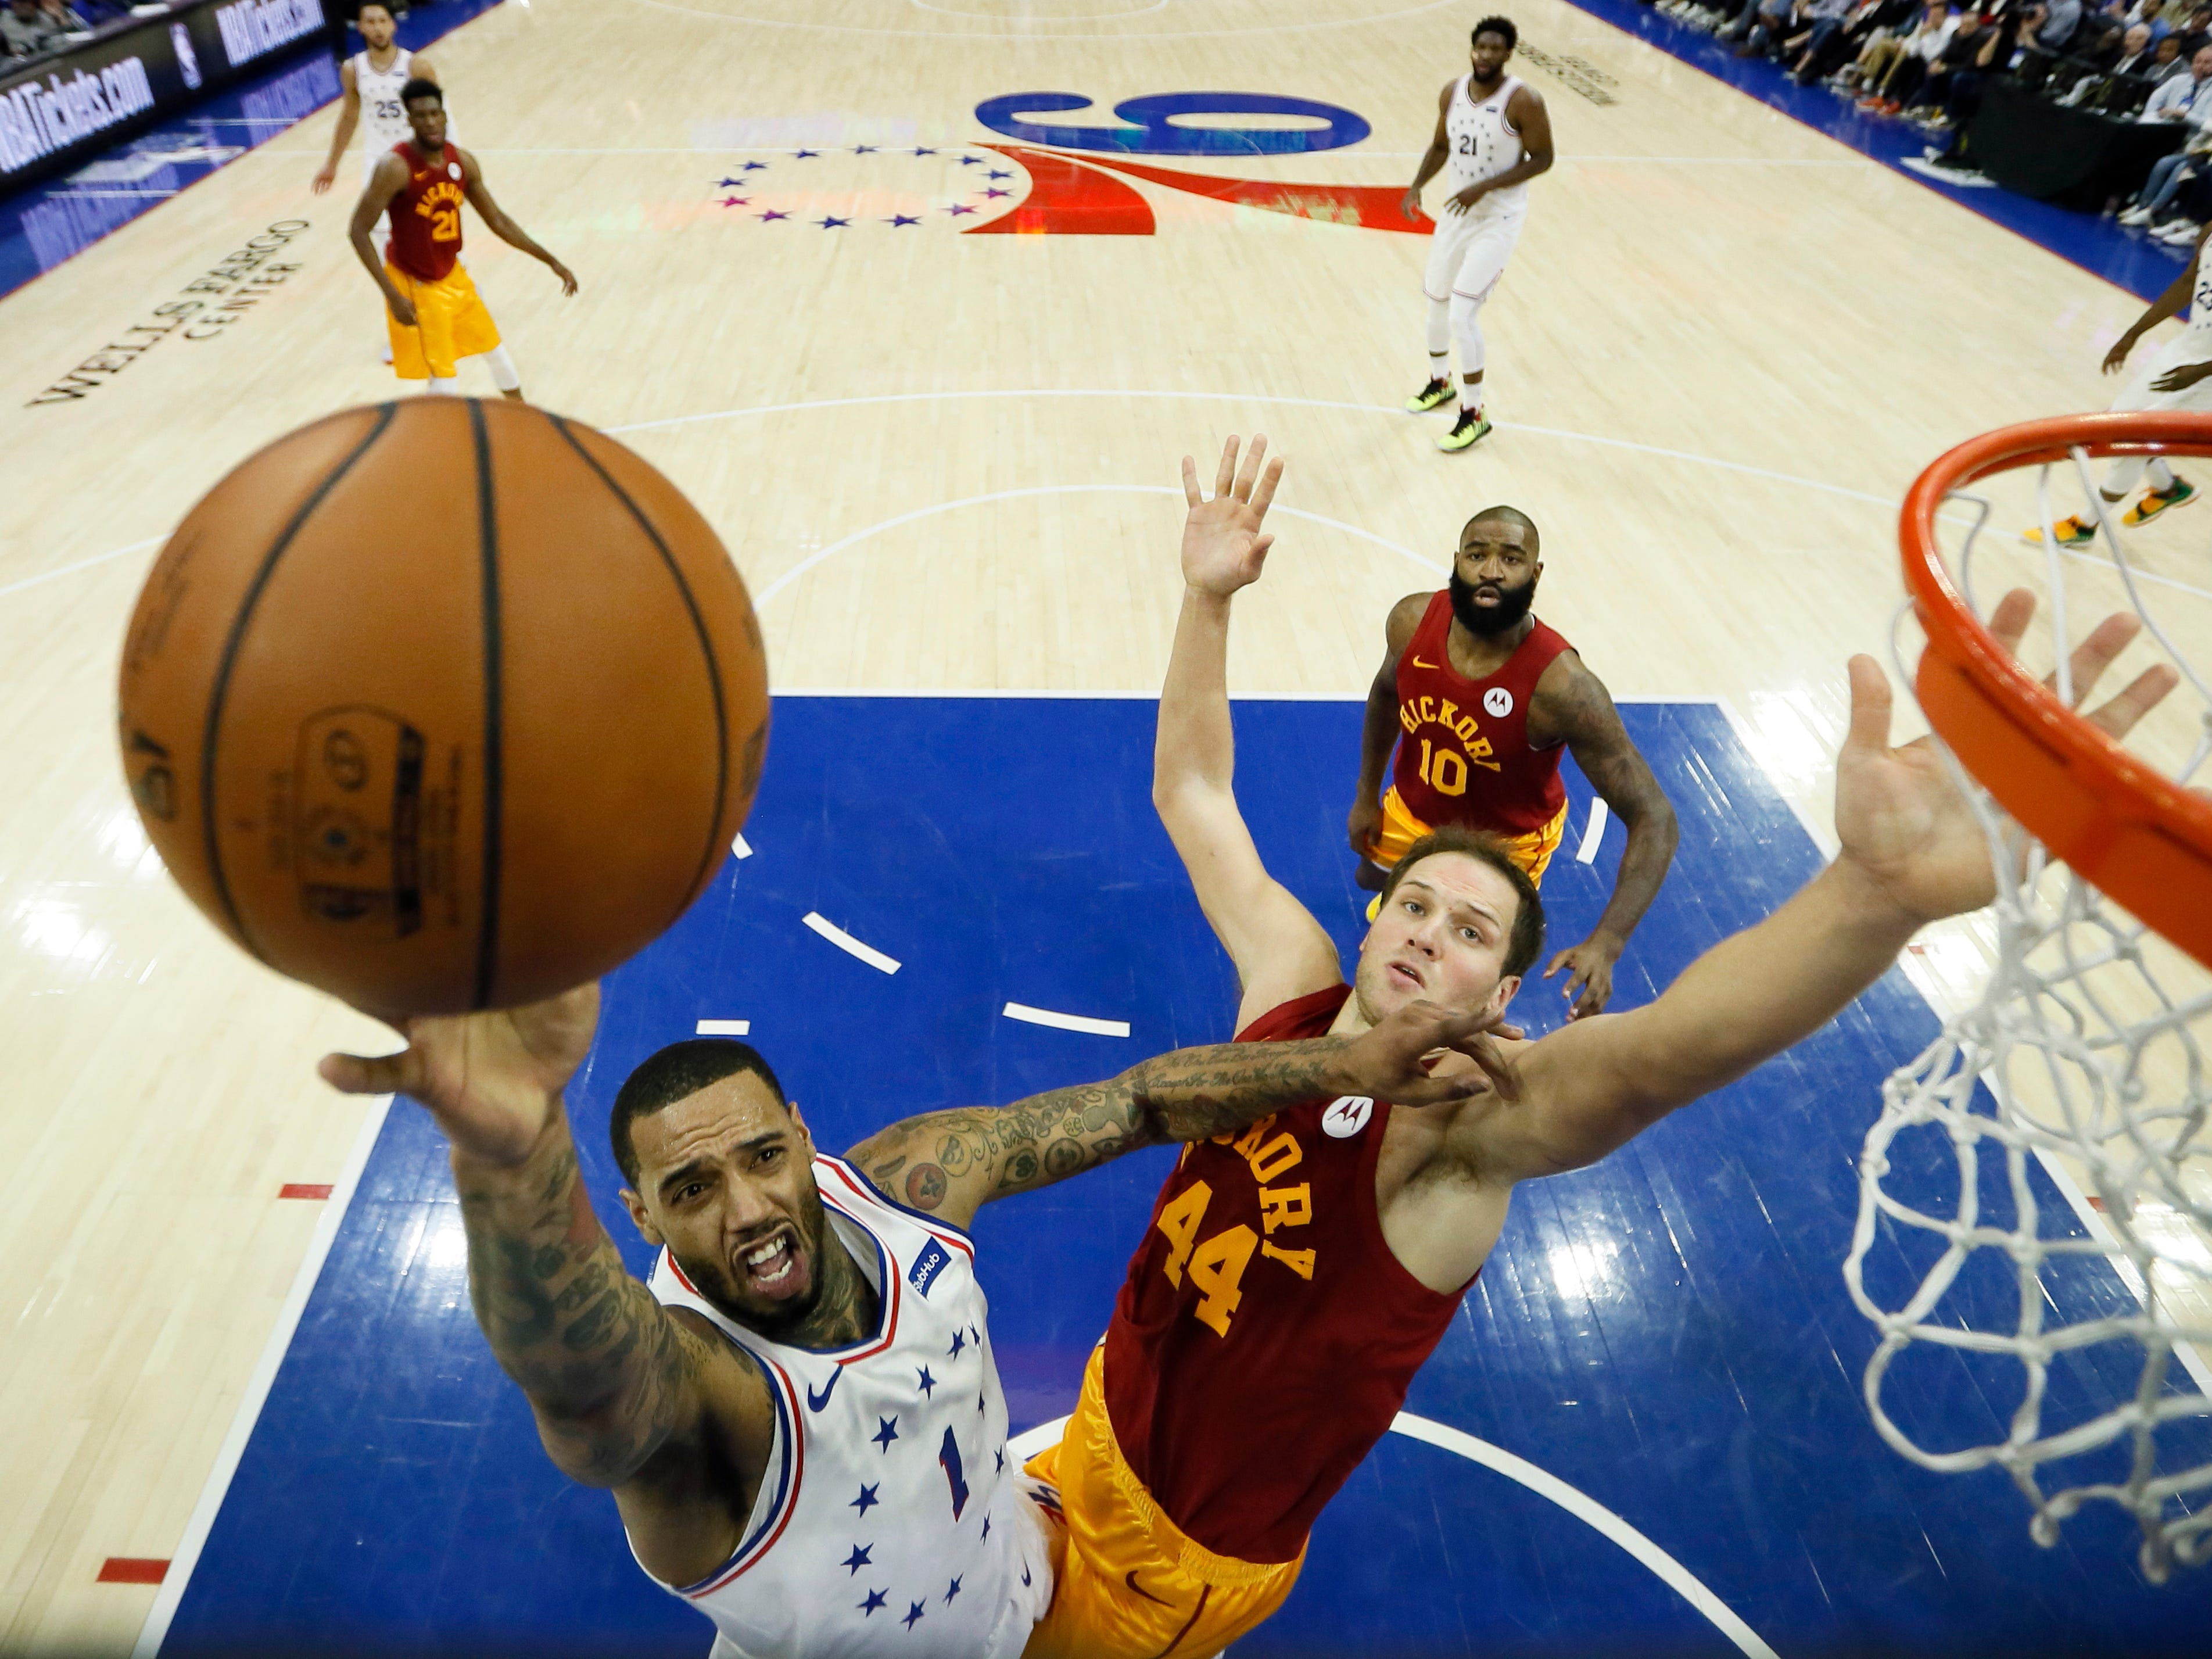 Philadelphia 76ers' Mike Scott (1) goes up for a shot past Indiana Pacers' Bojan Bogdanovic (44) during the first half of an NBA basketball game, Sunday, March 10, 2019, in Philadelphia.